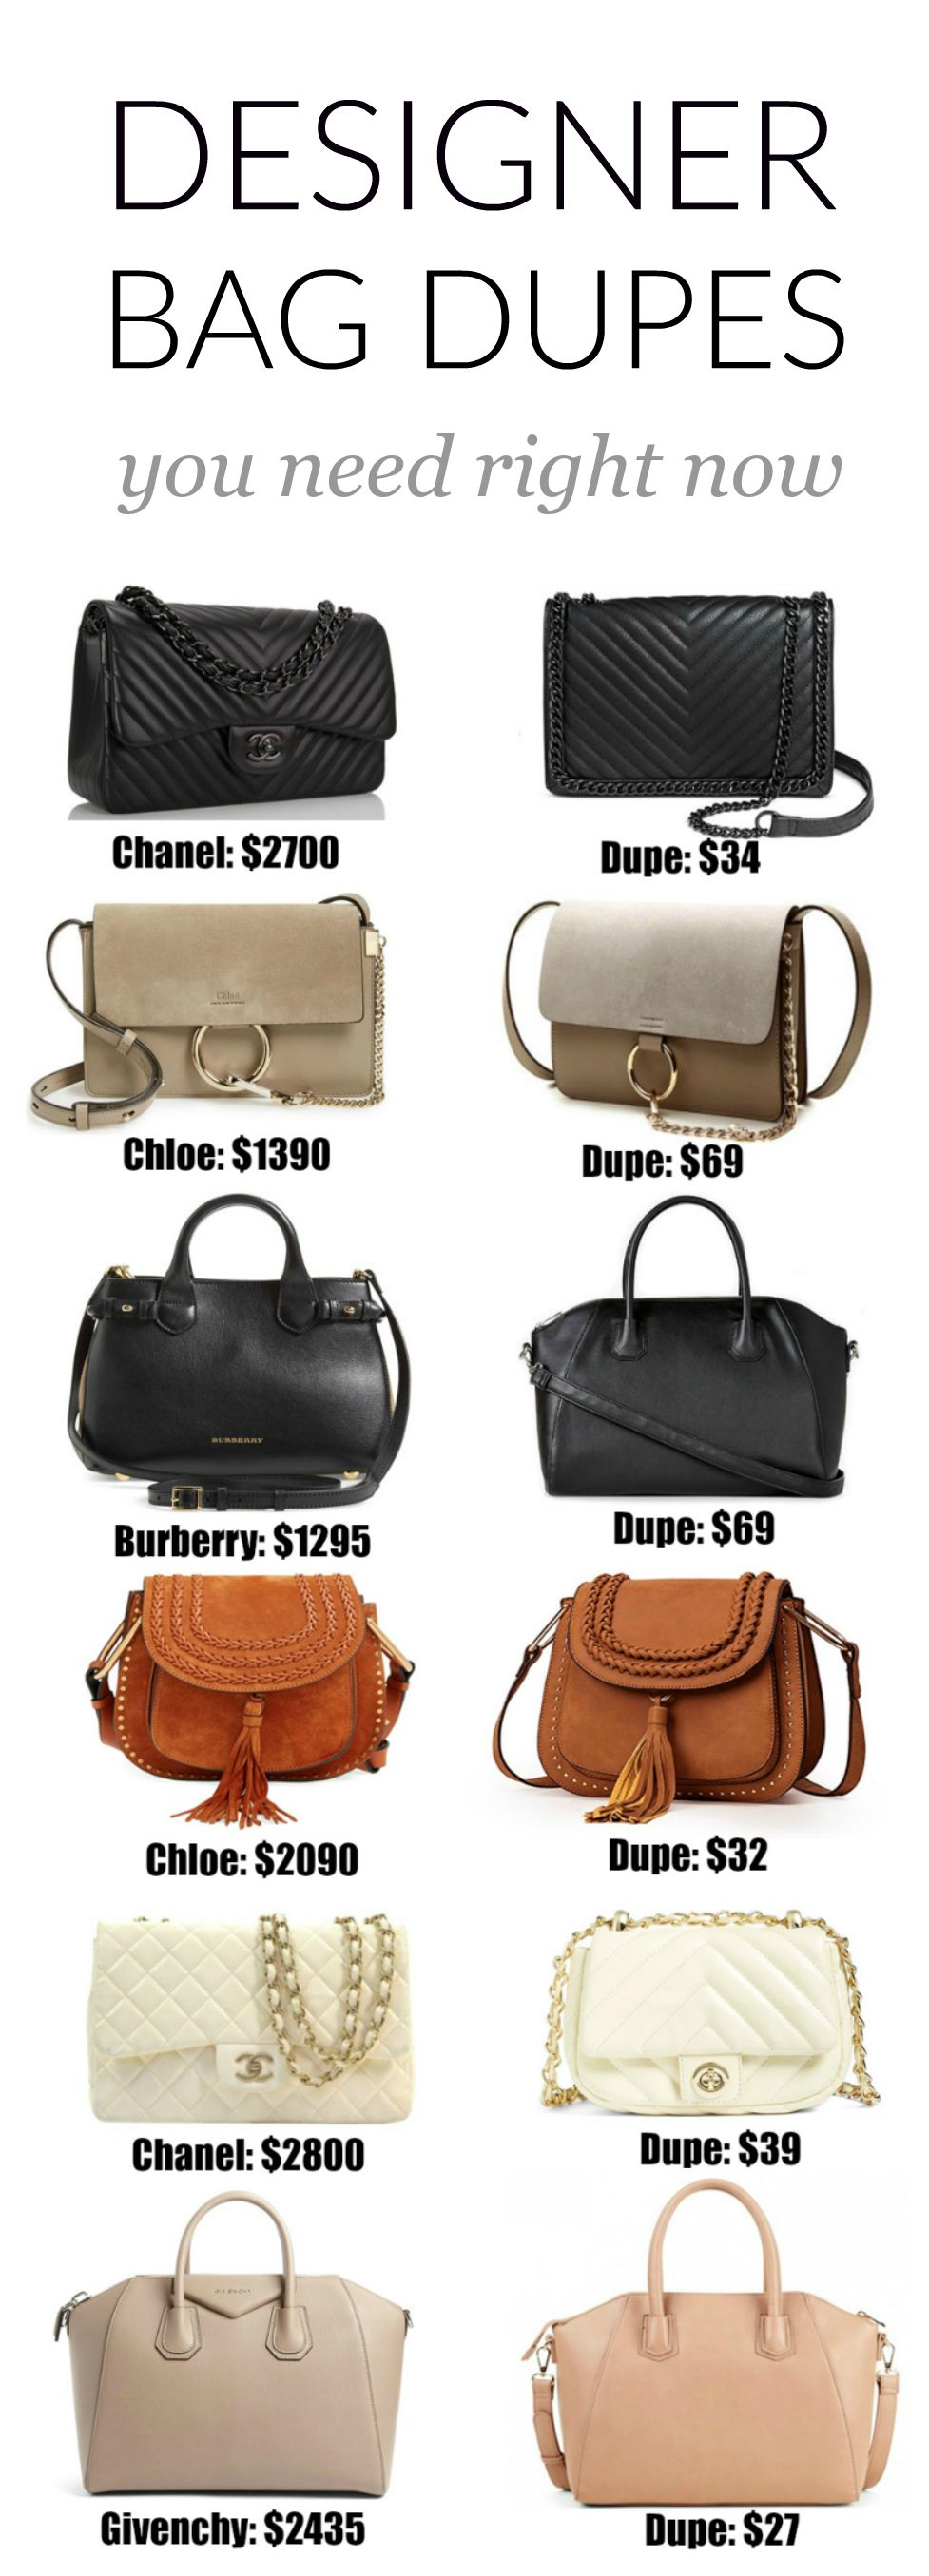 The Ultimate Designer Bag Dupes Guide | InfluenceHer ...